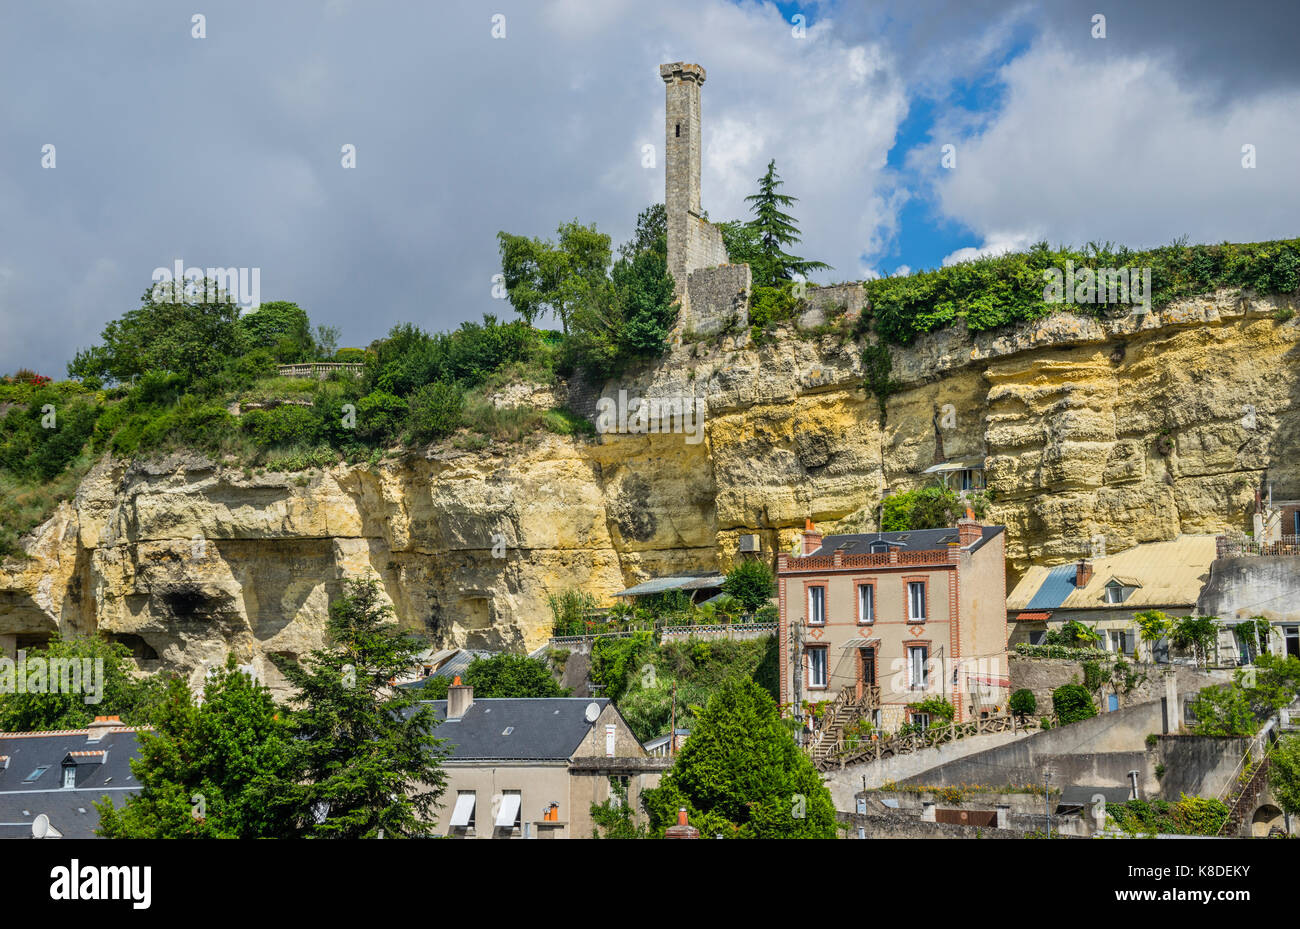 France, Indre-et-Loire department, Touraine, view of Rochecorbon in the Loire Valley, against the backdrop of the - Stock Image